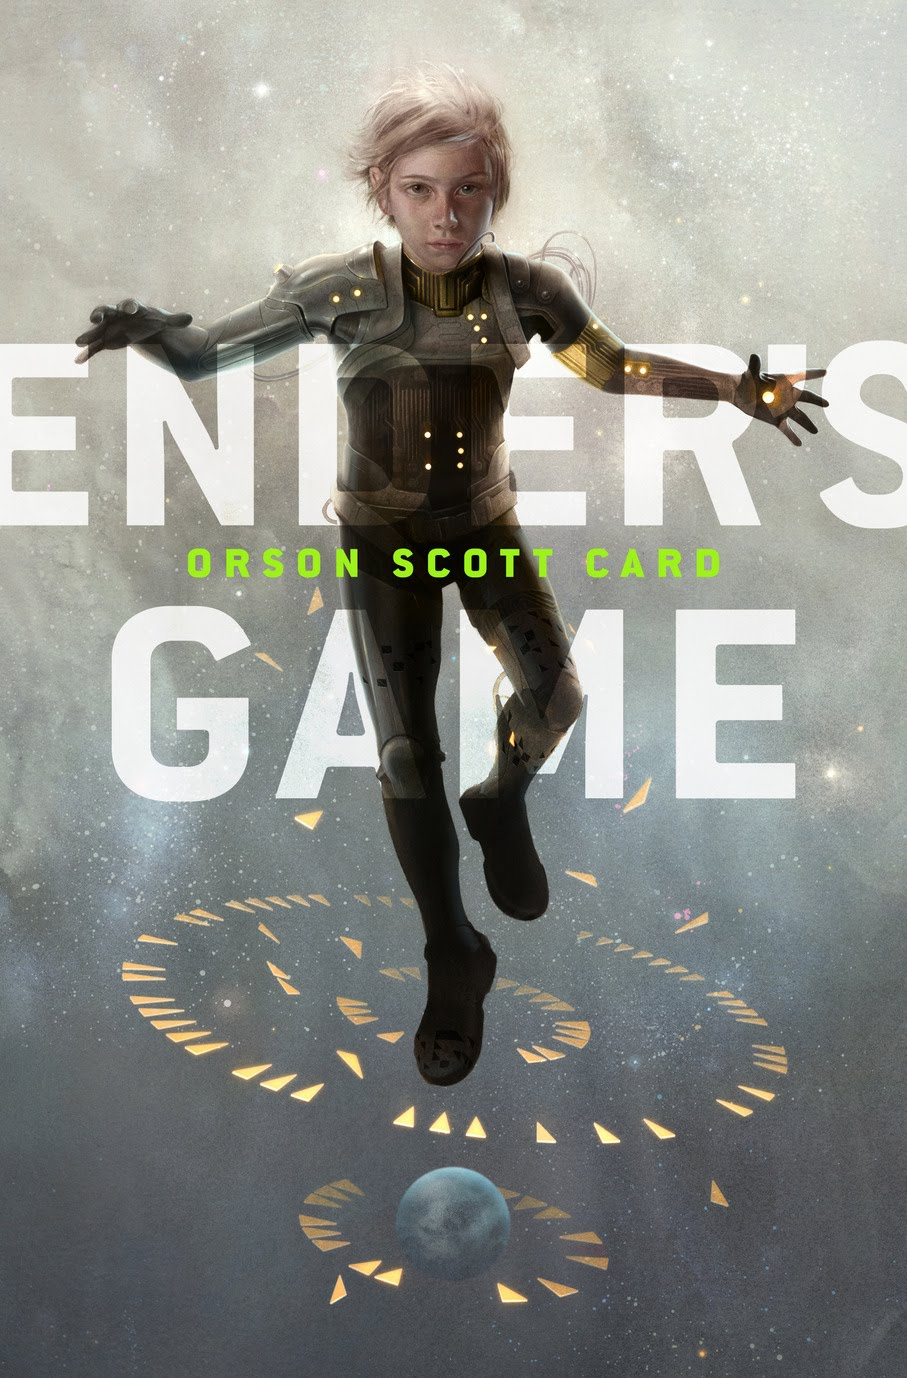 """Ender's Game"" book cover"